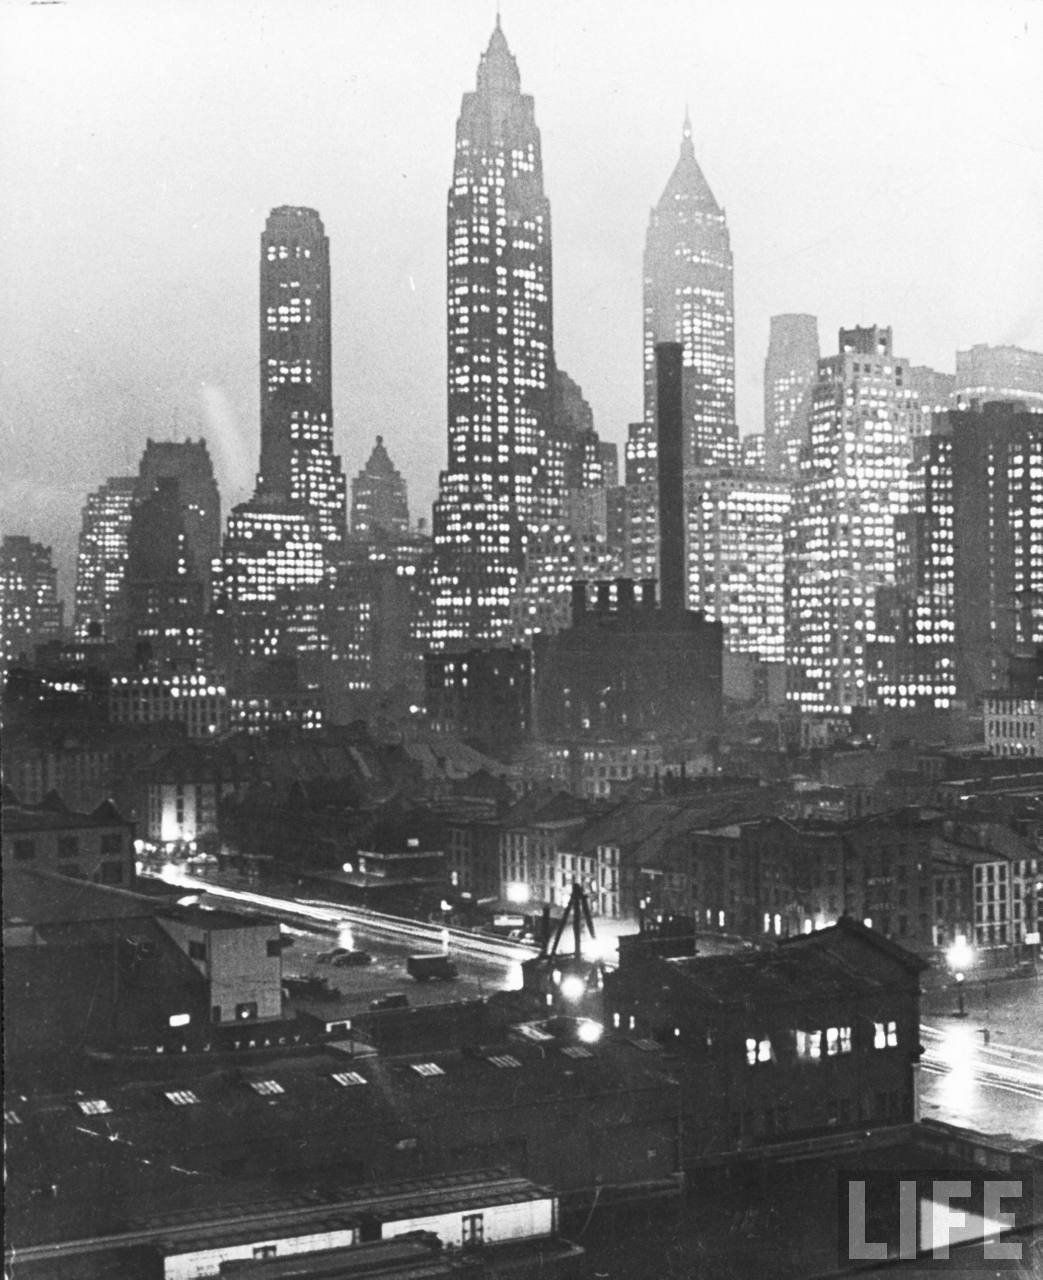 I love these old Manhattan skyline photos. This is by Andreas Feininger for LIFE magazine in 1944